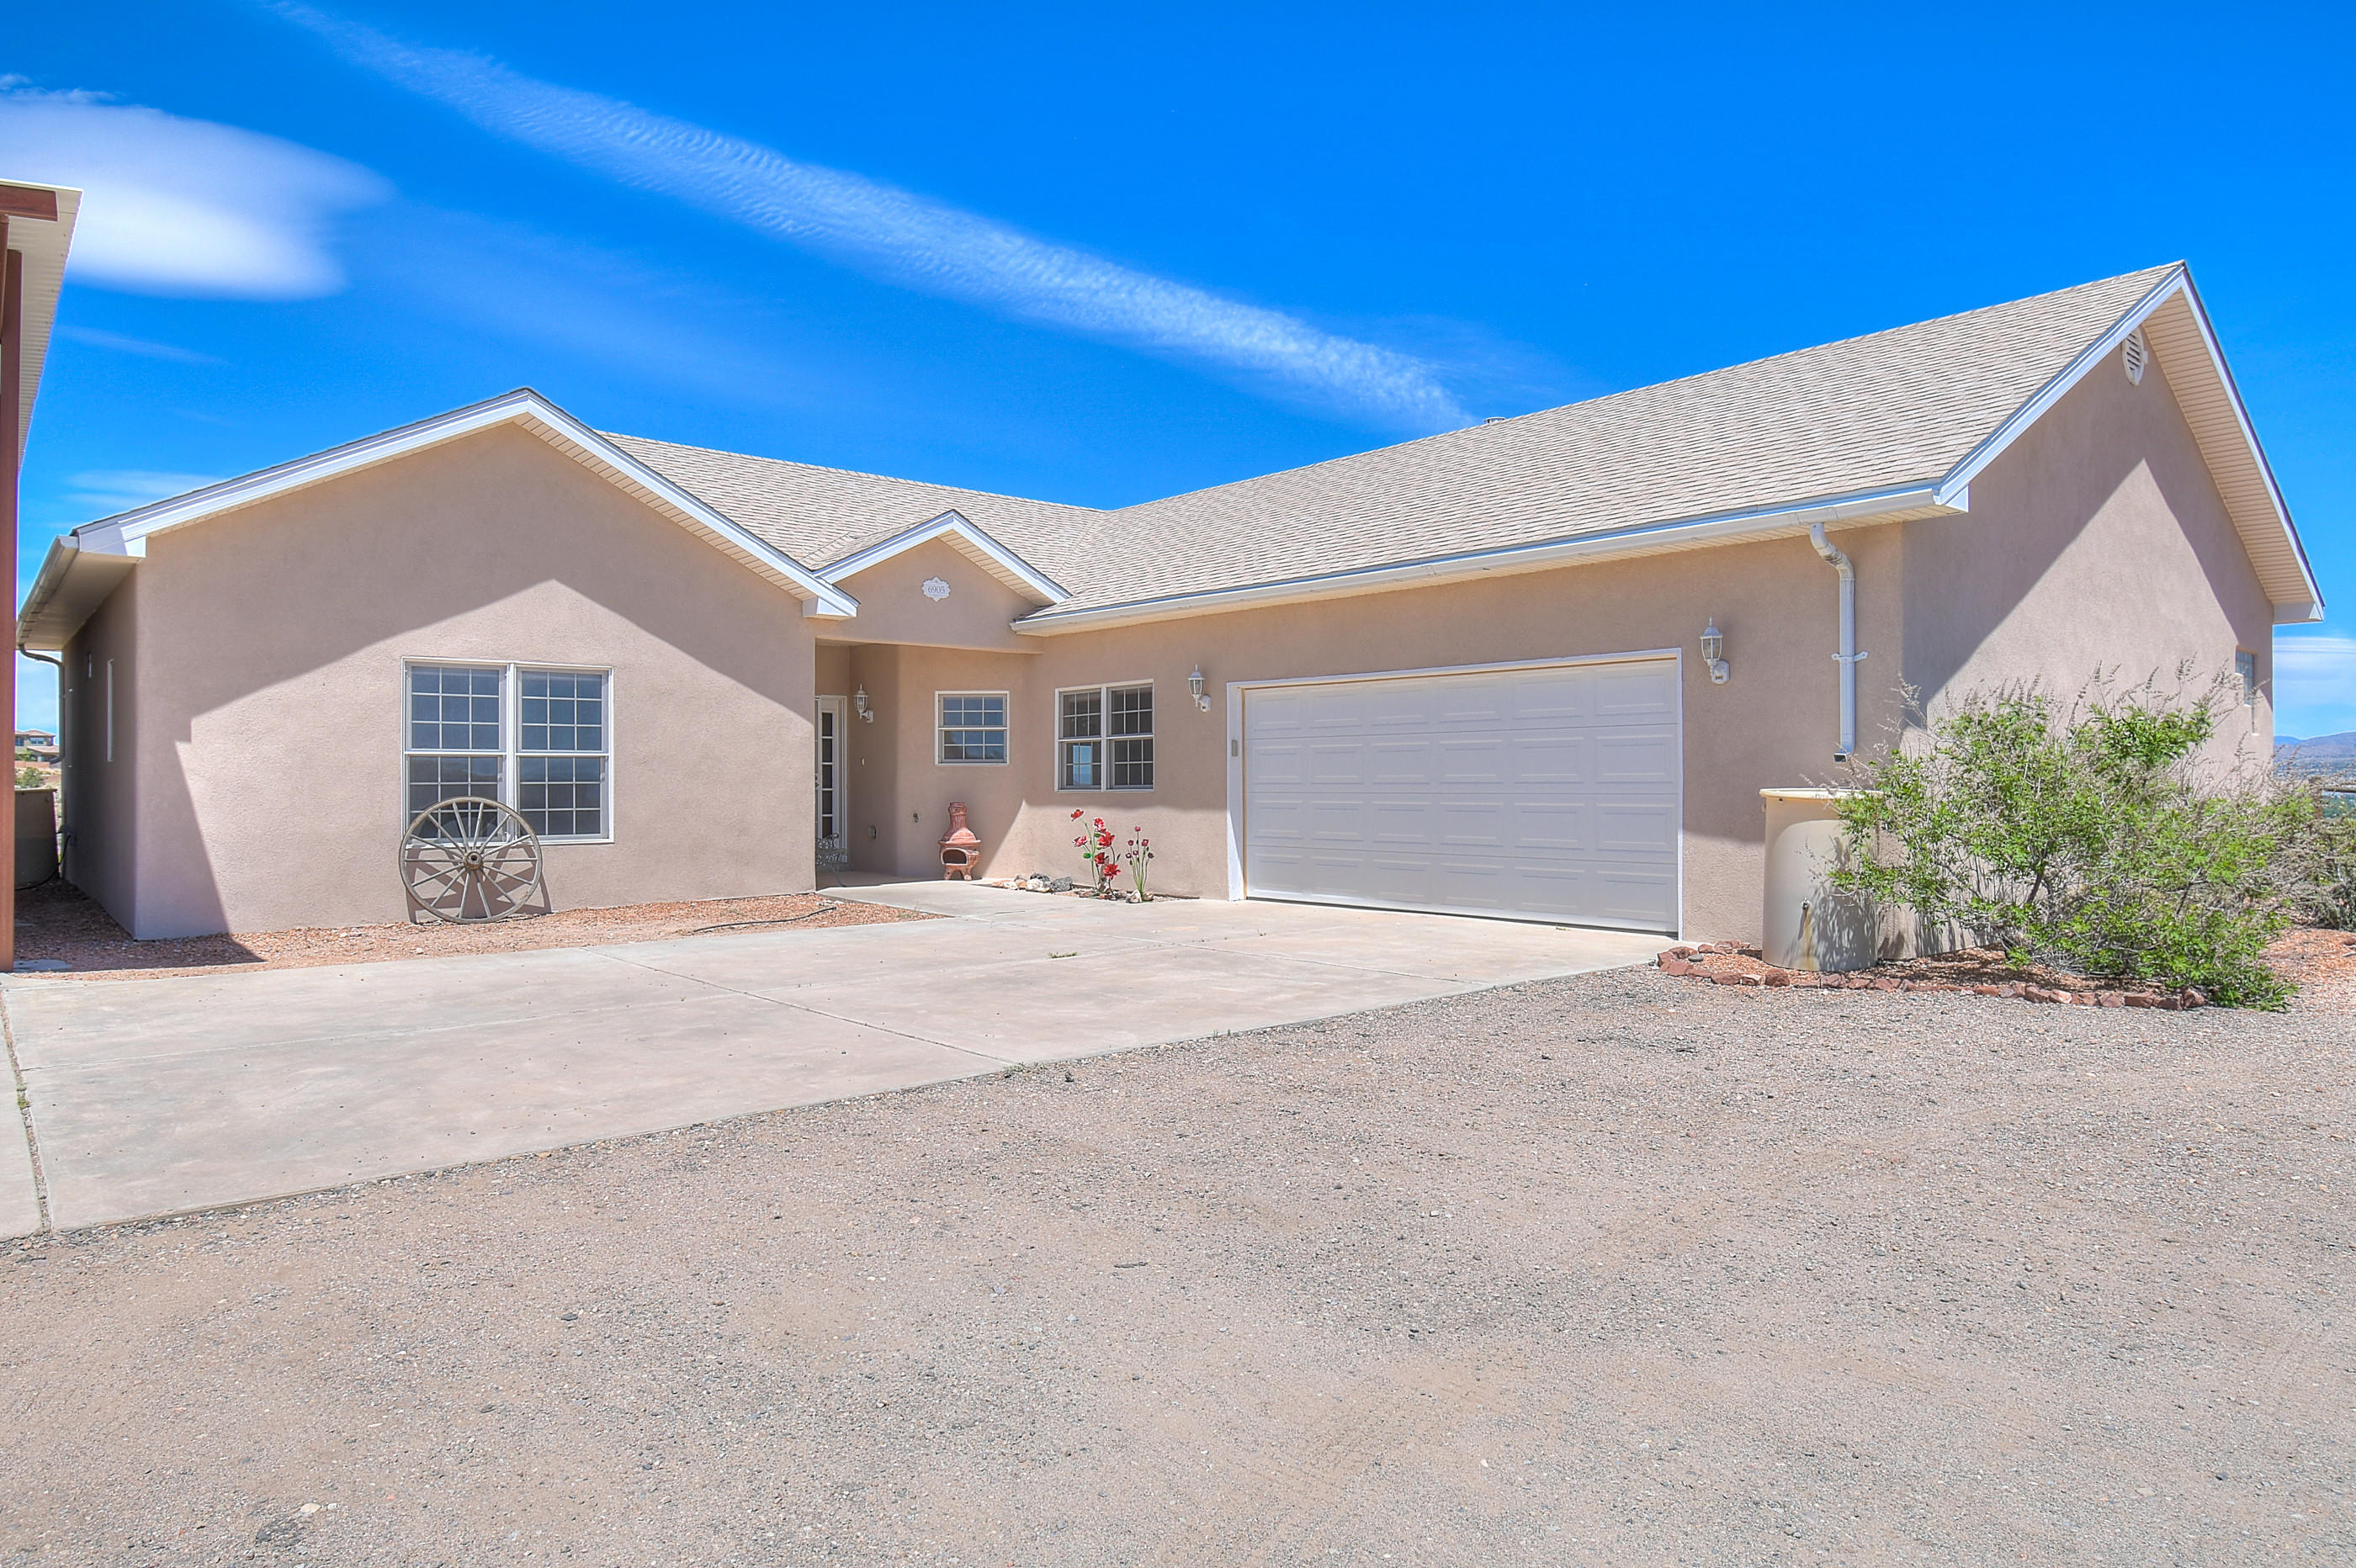 Come take a look at this custom 1 story home on half a acre.  Newer roof, stucco,tankless water heater and flooring. The house also has refrigerated air, raidaint heating and a massive deck off back yard. There is also a RV Pad with Hookups! What makes this house stand out in addition to the open floor plan is the Views! From the back deck you can view 5 mountain ranges: Jemez, Sangre de Christo, Ortiz, Sandia and Manzano. Each day  listen to the sounds of nature and the almost interrupted by the quail and roadrunners that frequently visit the yard. The landscape has been completed in front and back yard with a amazing rock wall and sitting area. Come make this your Dream Home Today!!